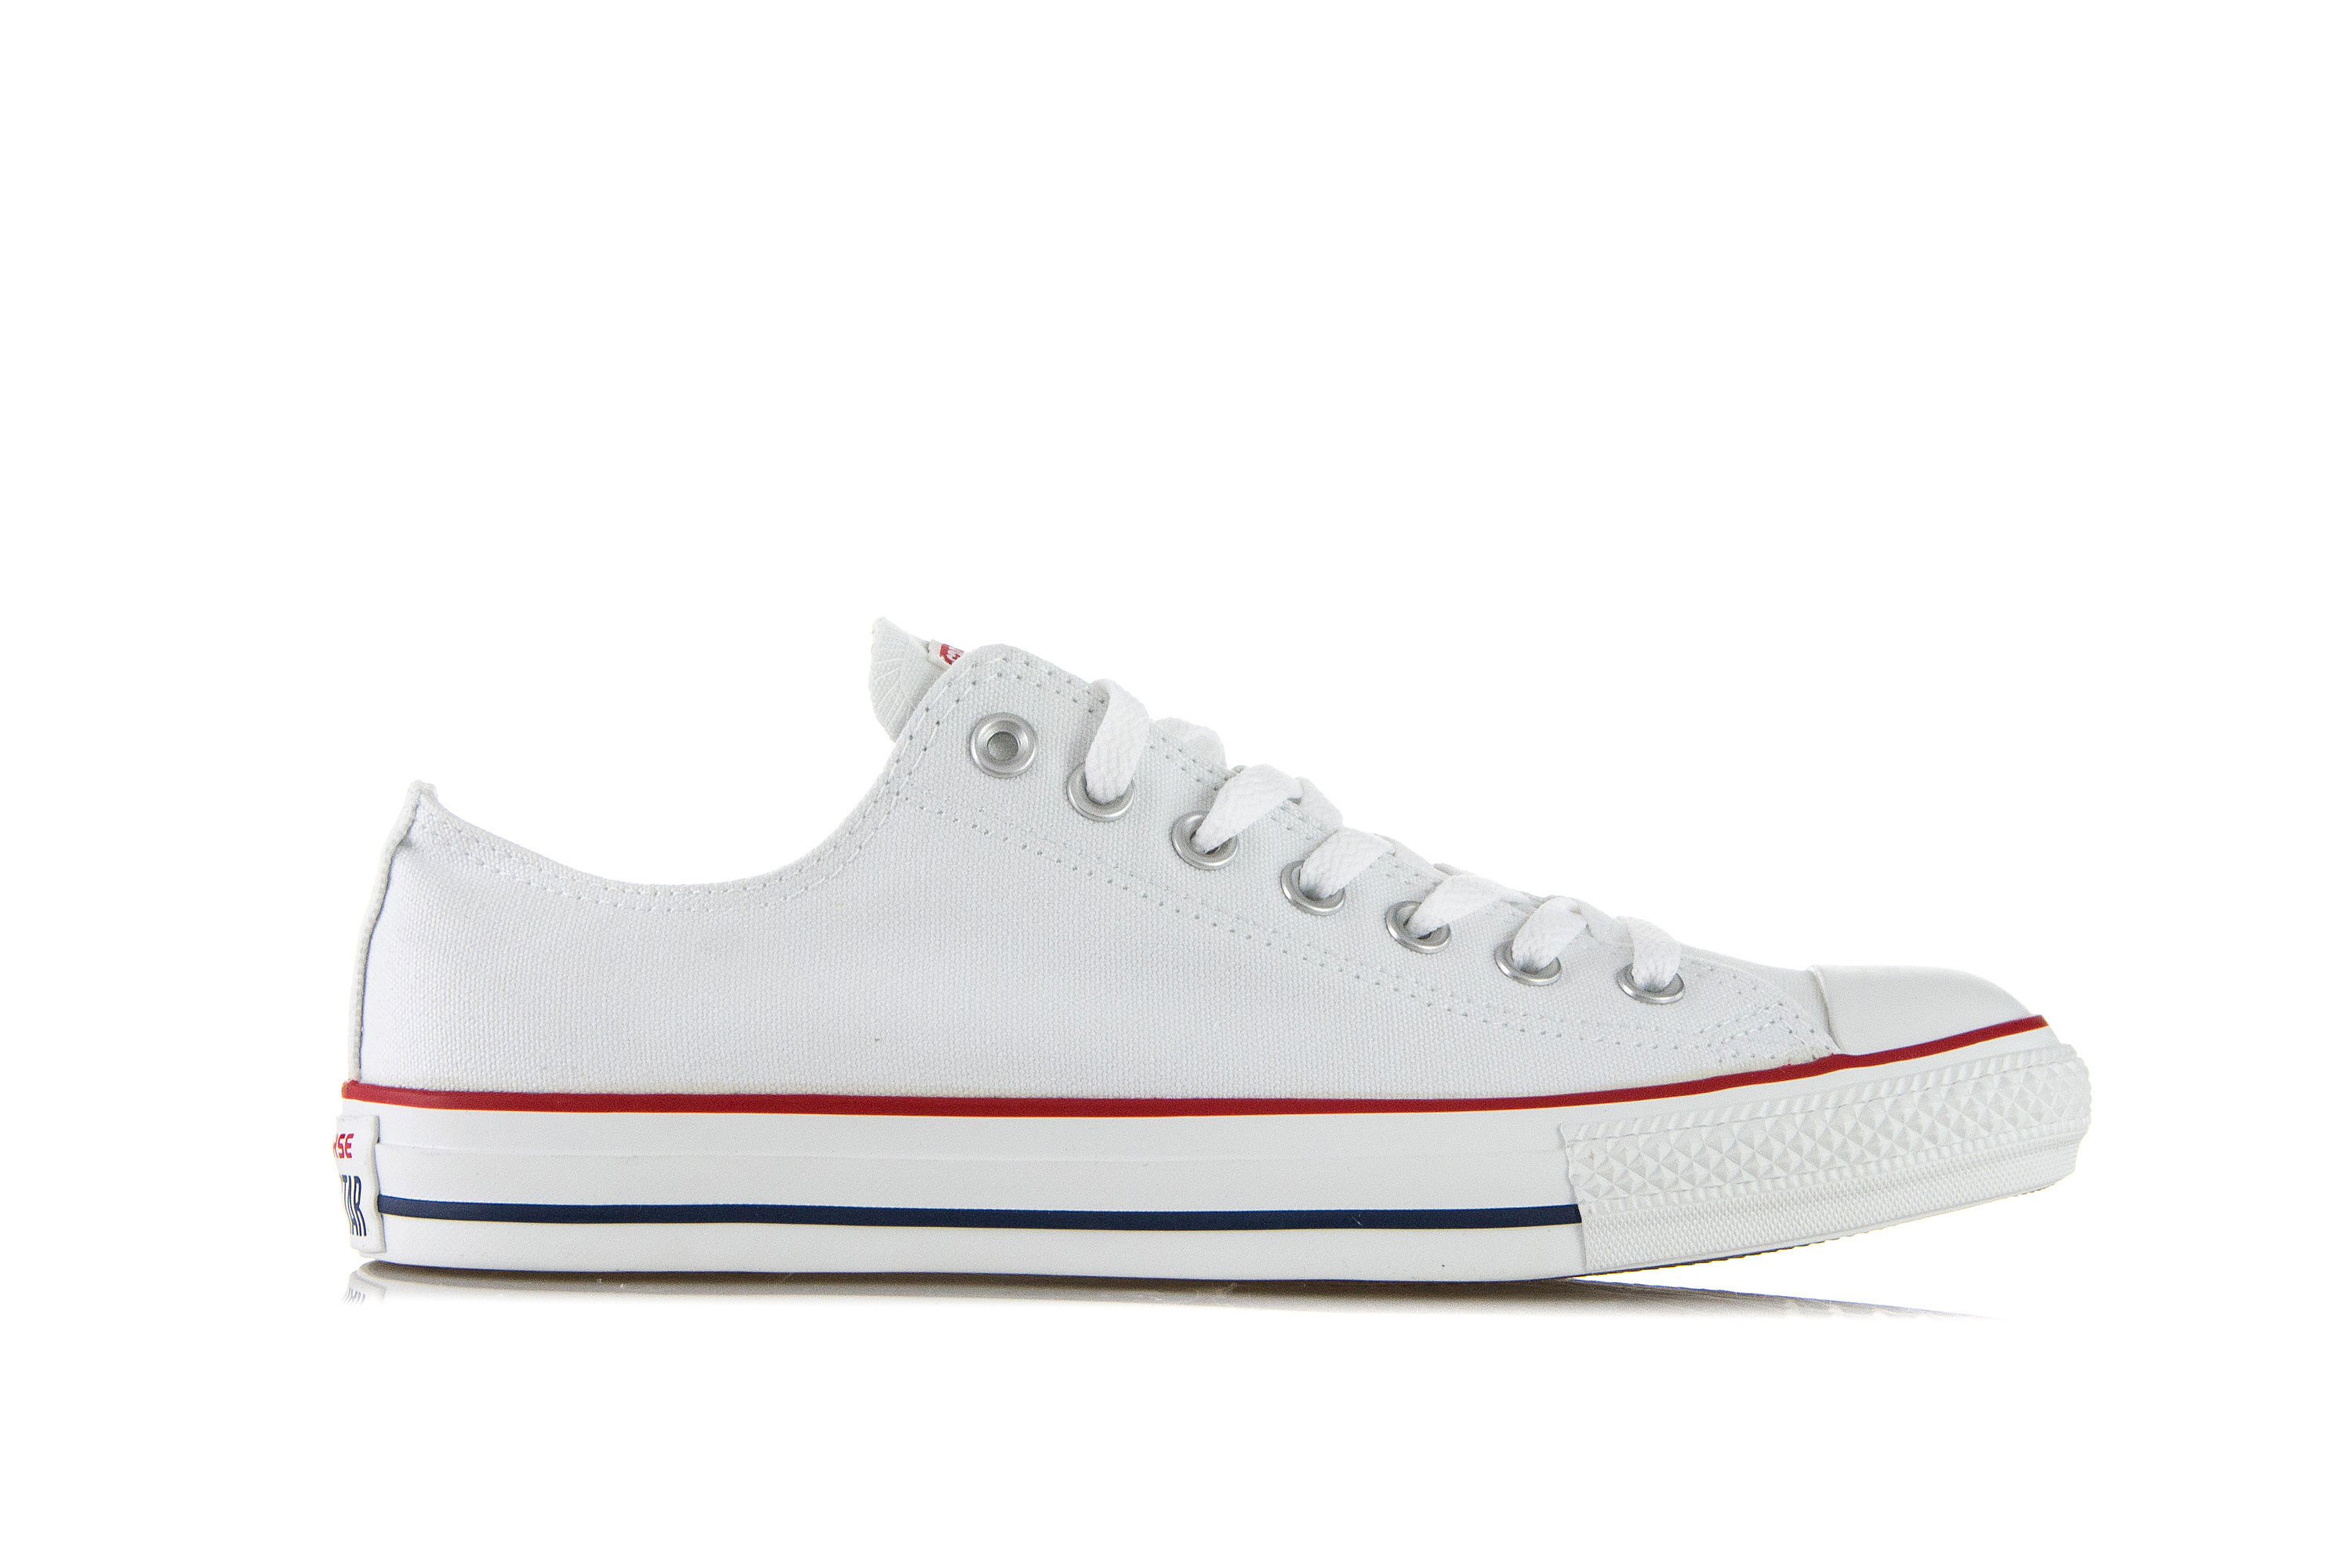 Converse Chuck Taylor All Pelle Bianca Star Lo Sneaker Basse UK 8 MEN'S